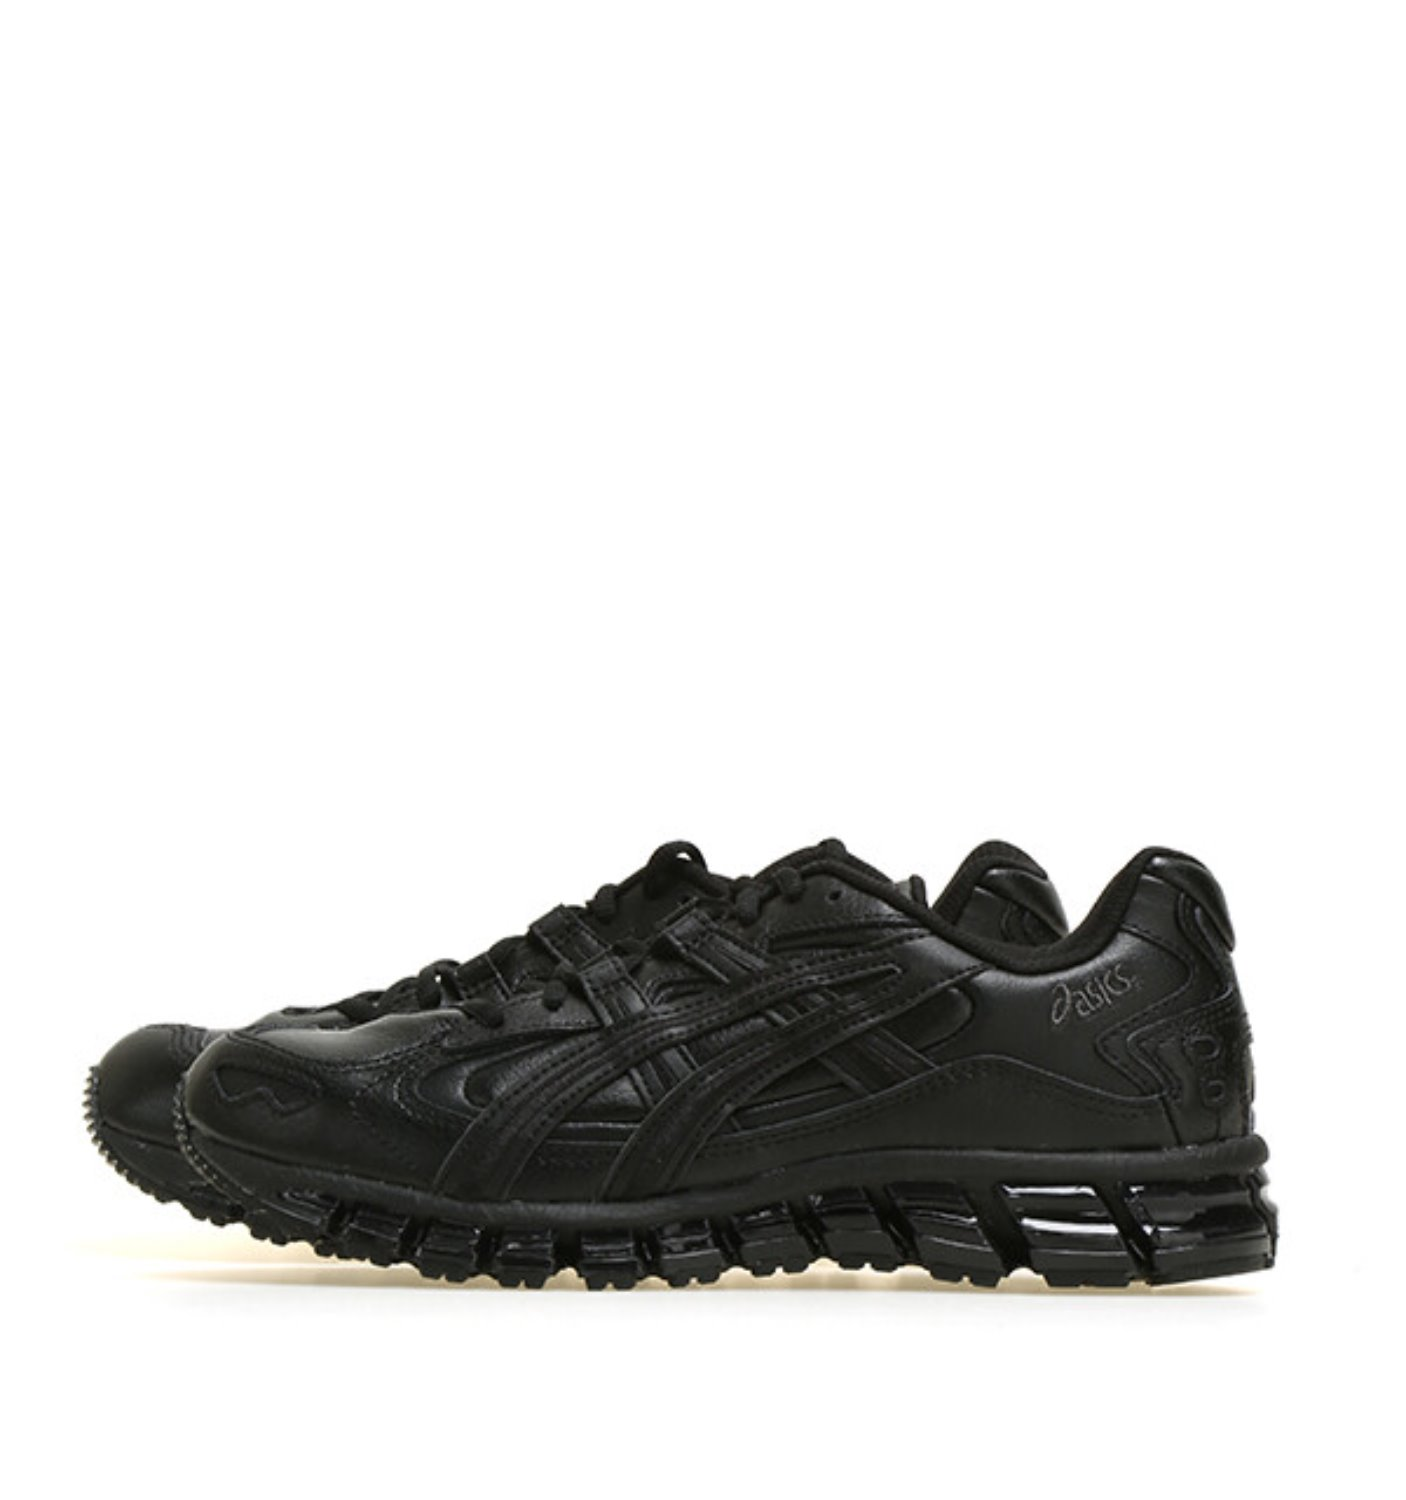 GEL-KAYANO 5 360 MEN BLACK/BLACK